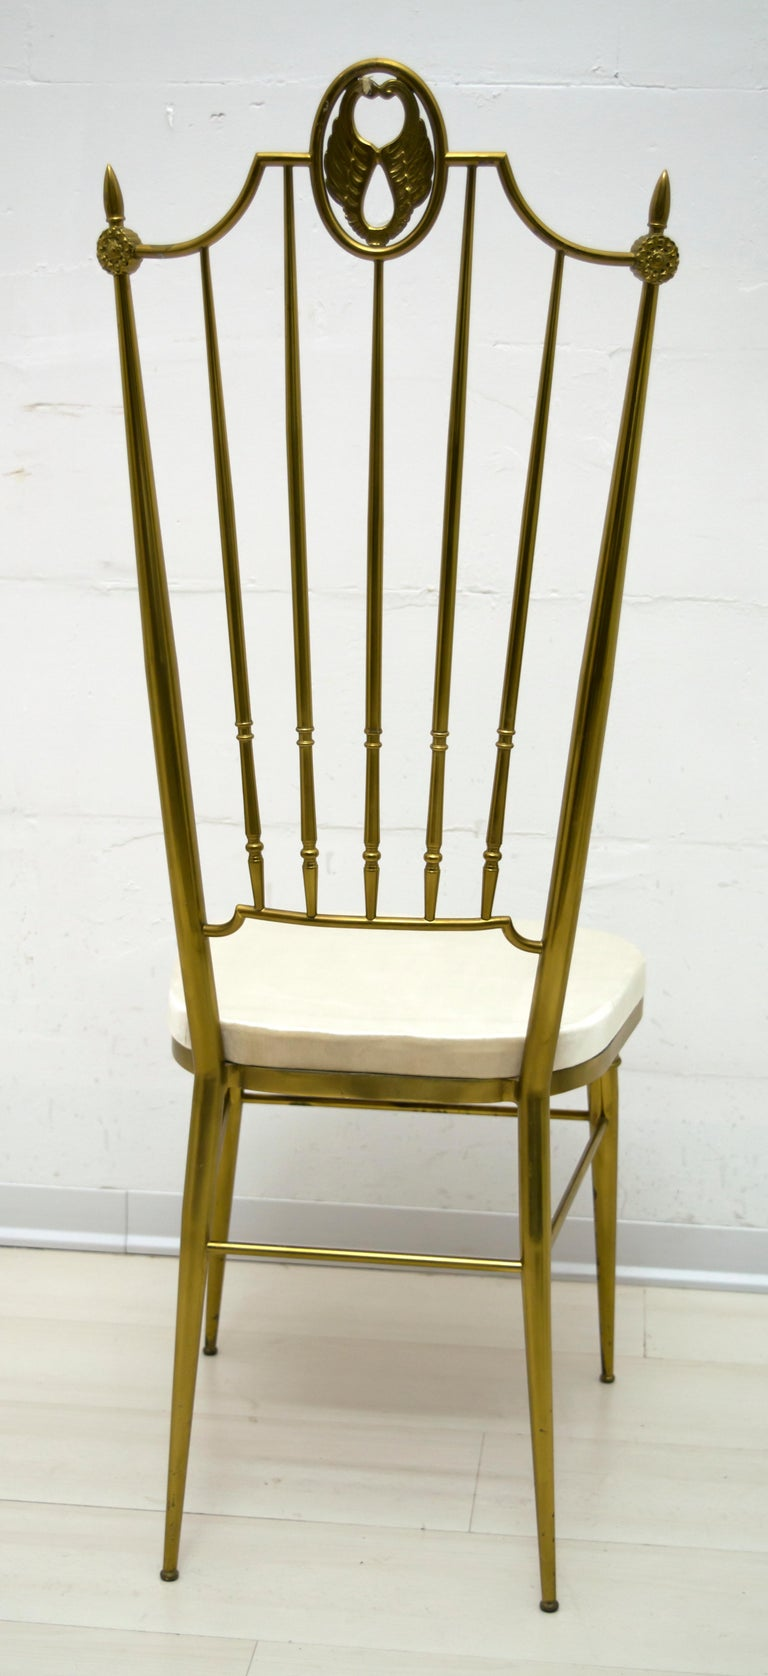 After Gio Ponti Mid-Century Modern Italian Brass High Back Chairs, 1950s For Sale 2